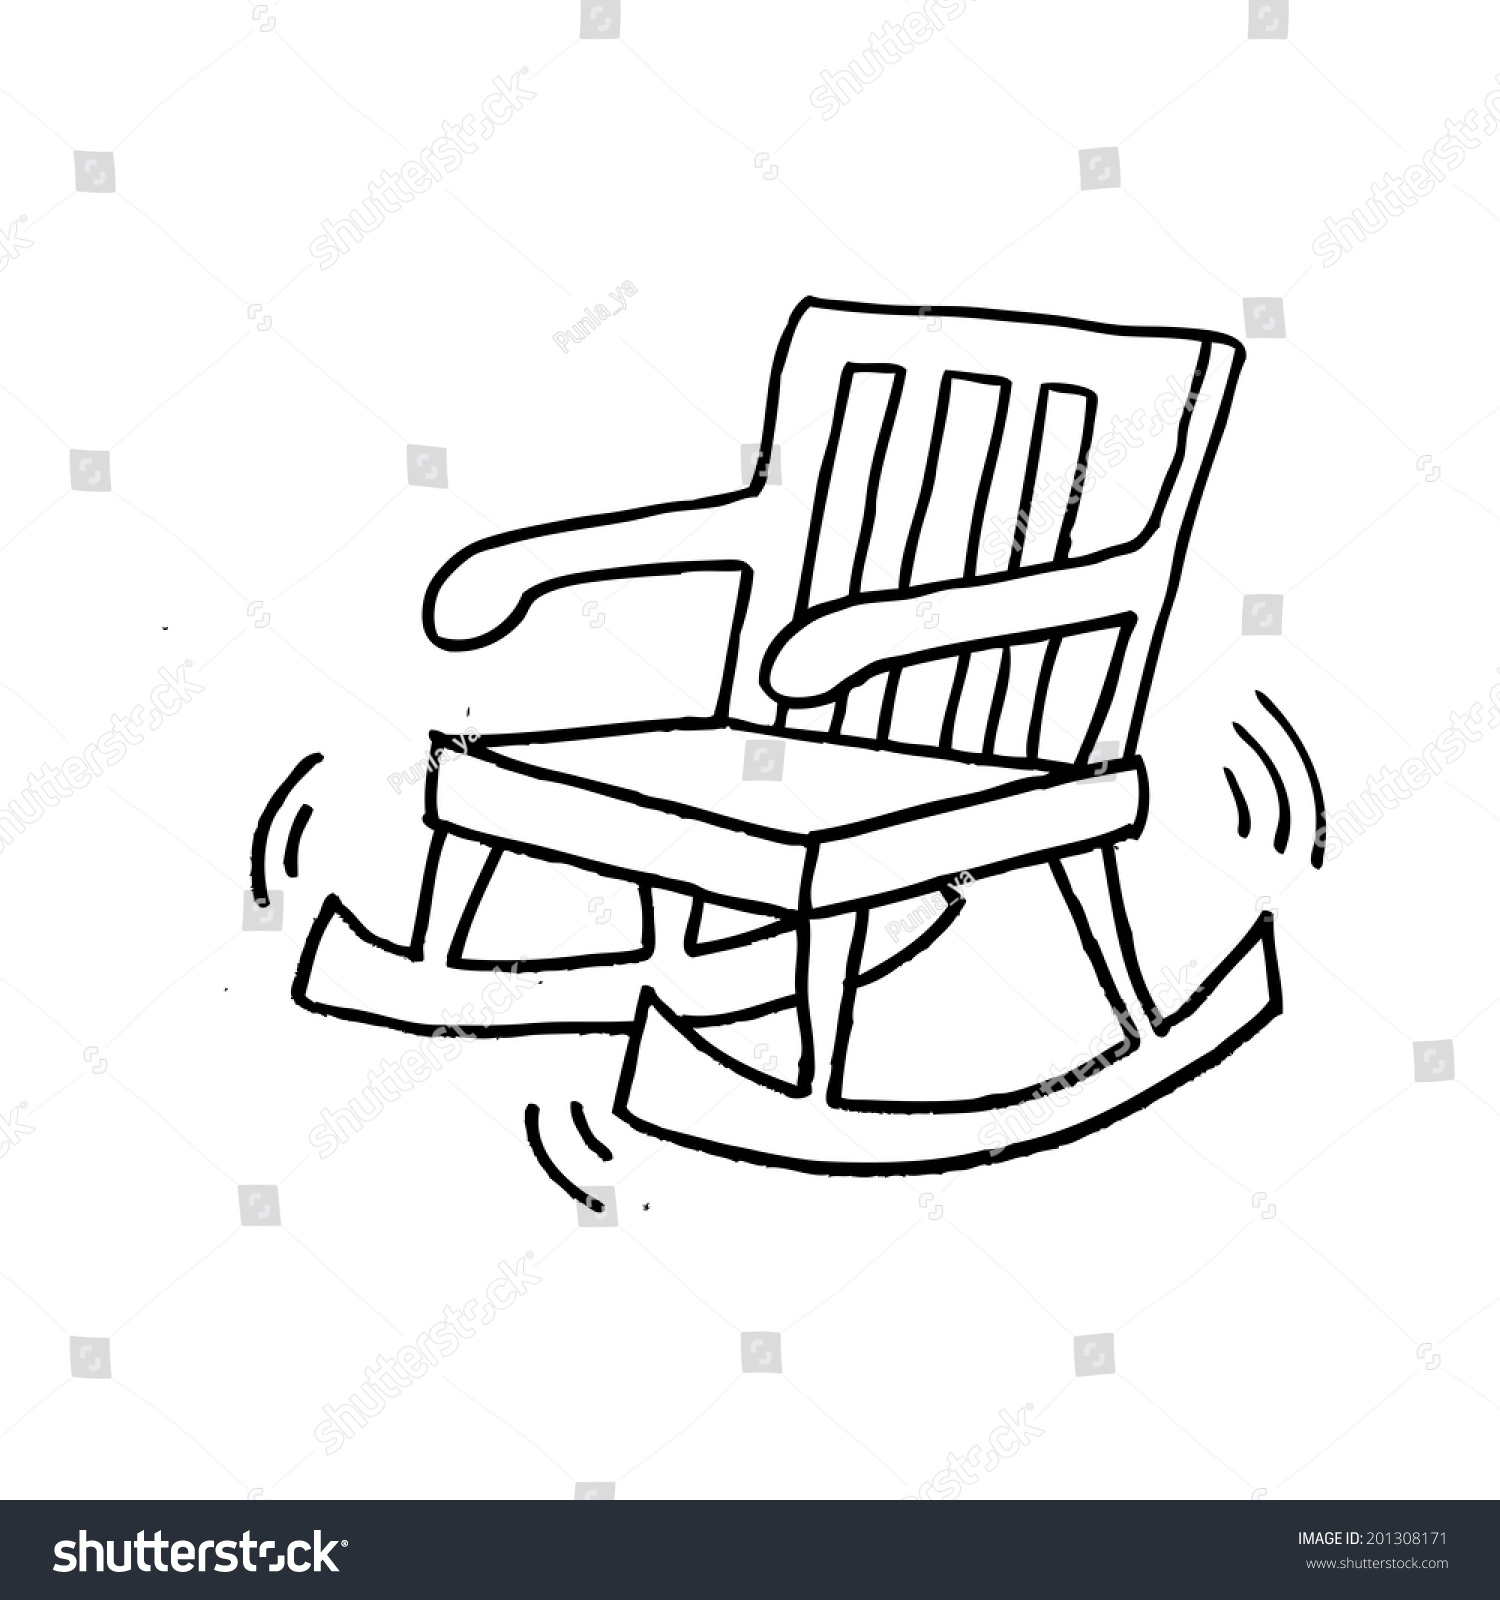 Incredible Rocking Chair Cartoon Stock Illustration 201308171 Machost Co Dining Chair Design Ideas Machostcouk